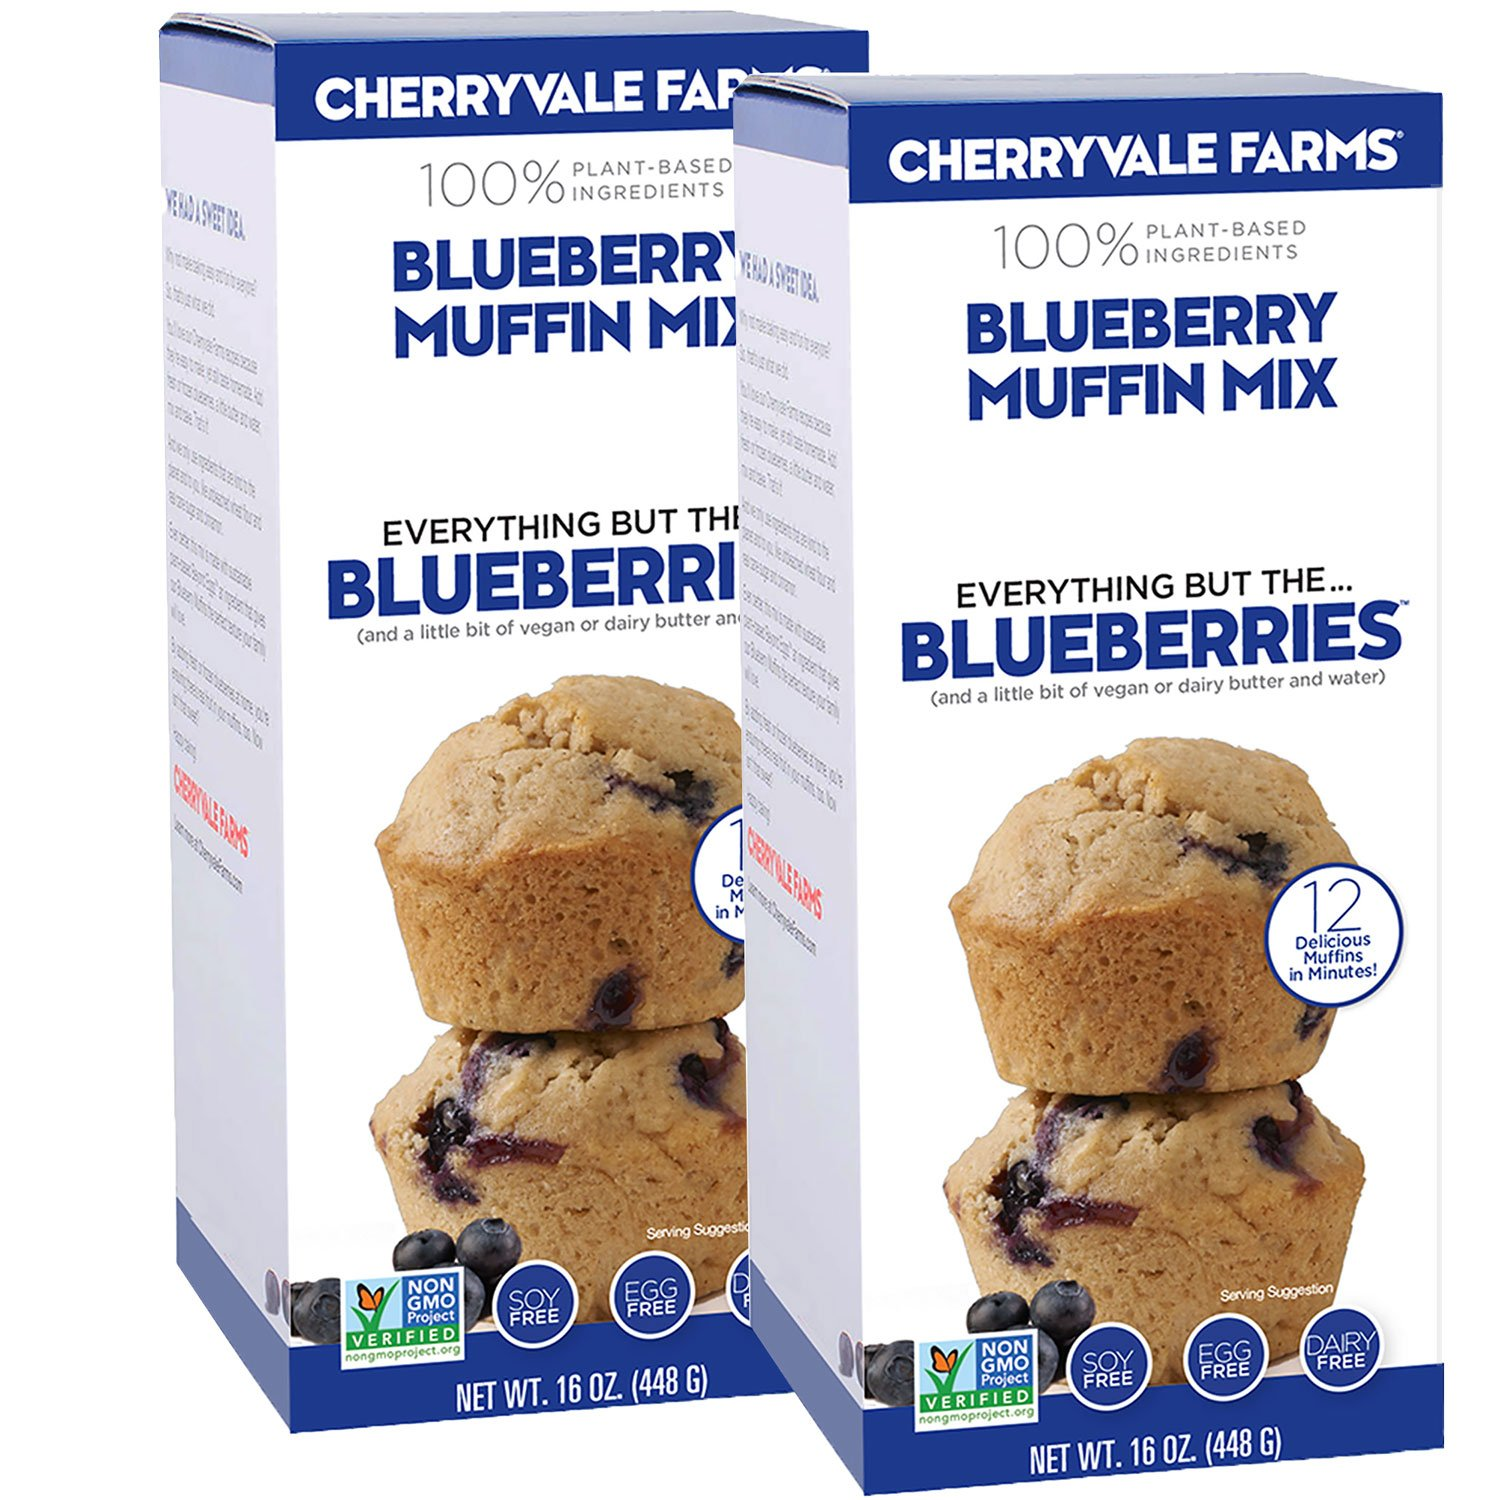 Cherryvale Farms, Blueberry Muffin Baking Mix, Everything But The Blueberries, Add Fresh Produce, Tastes Homemade, Non-GMO, Vegan, 100% Plant-Based, 16 oz (pack of 2)